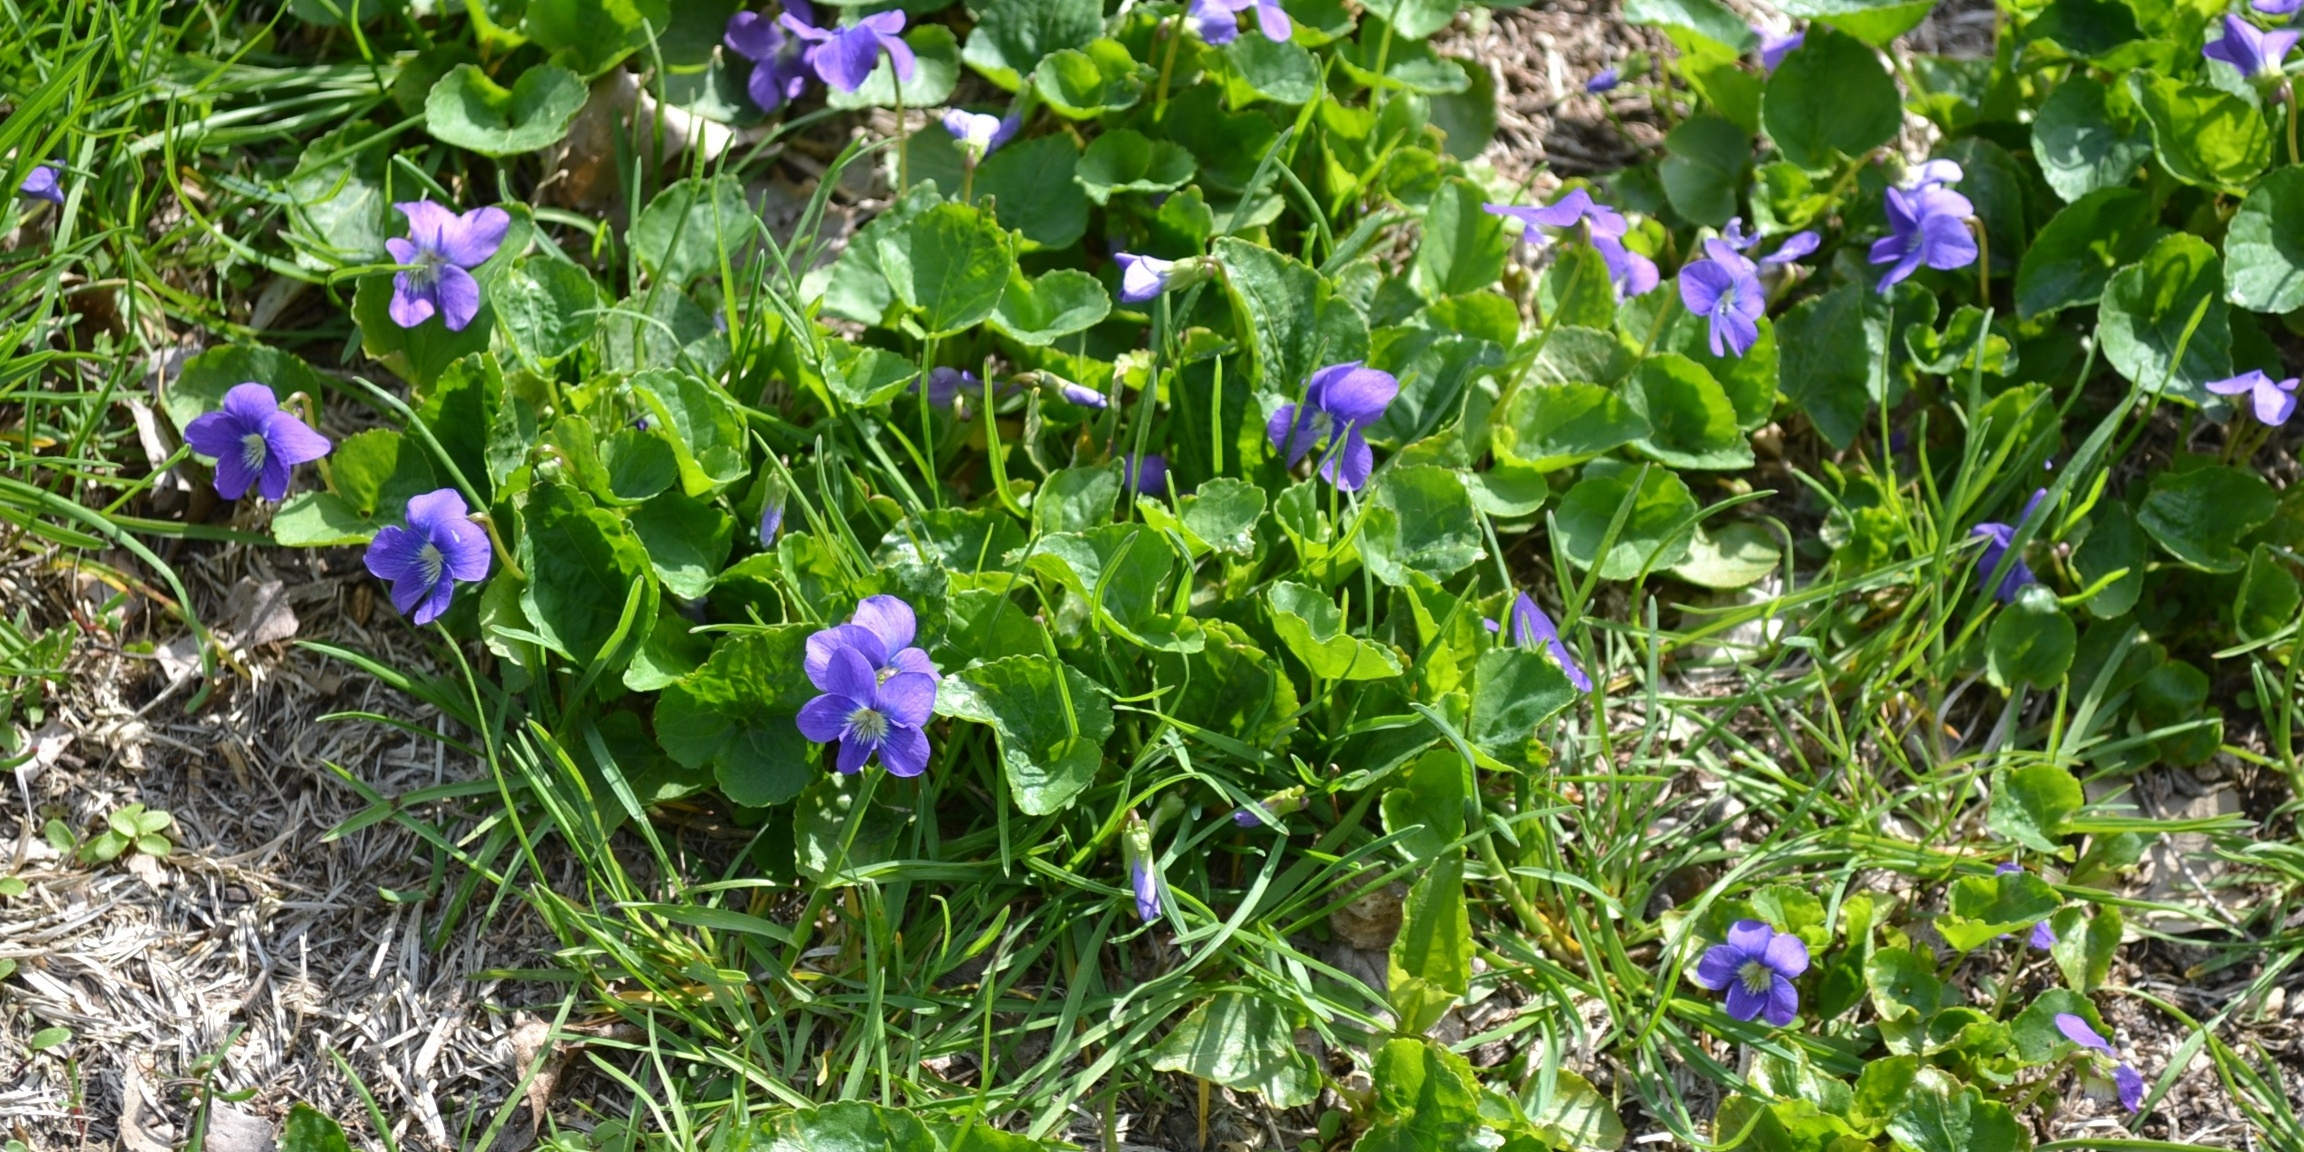 Wild Violet is another perennial broadleaf weed that favours shady, moist areas but can grow in full sunlight, too.